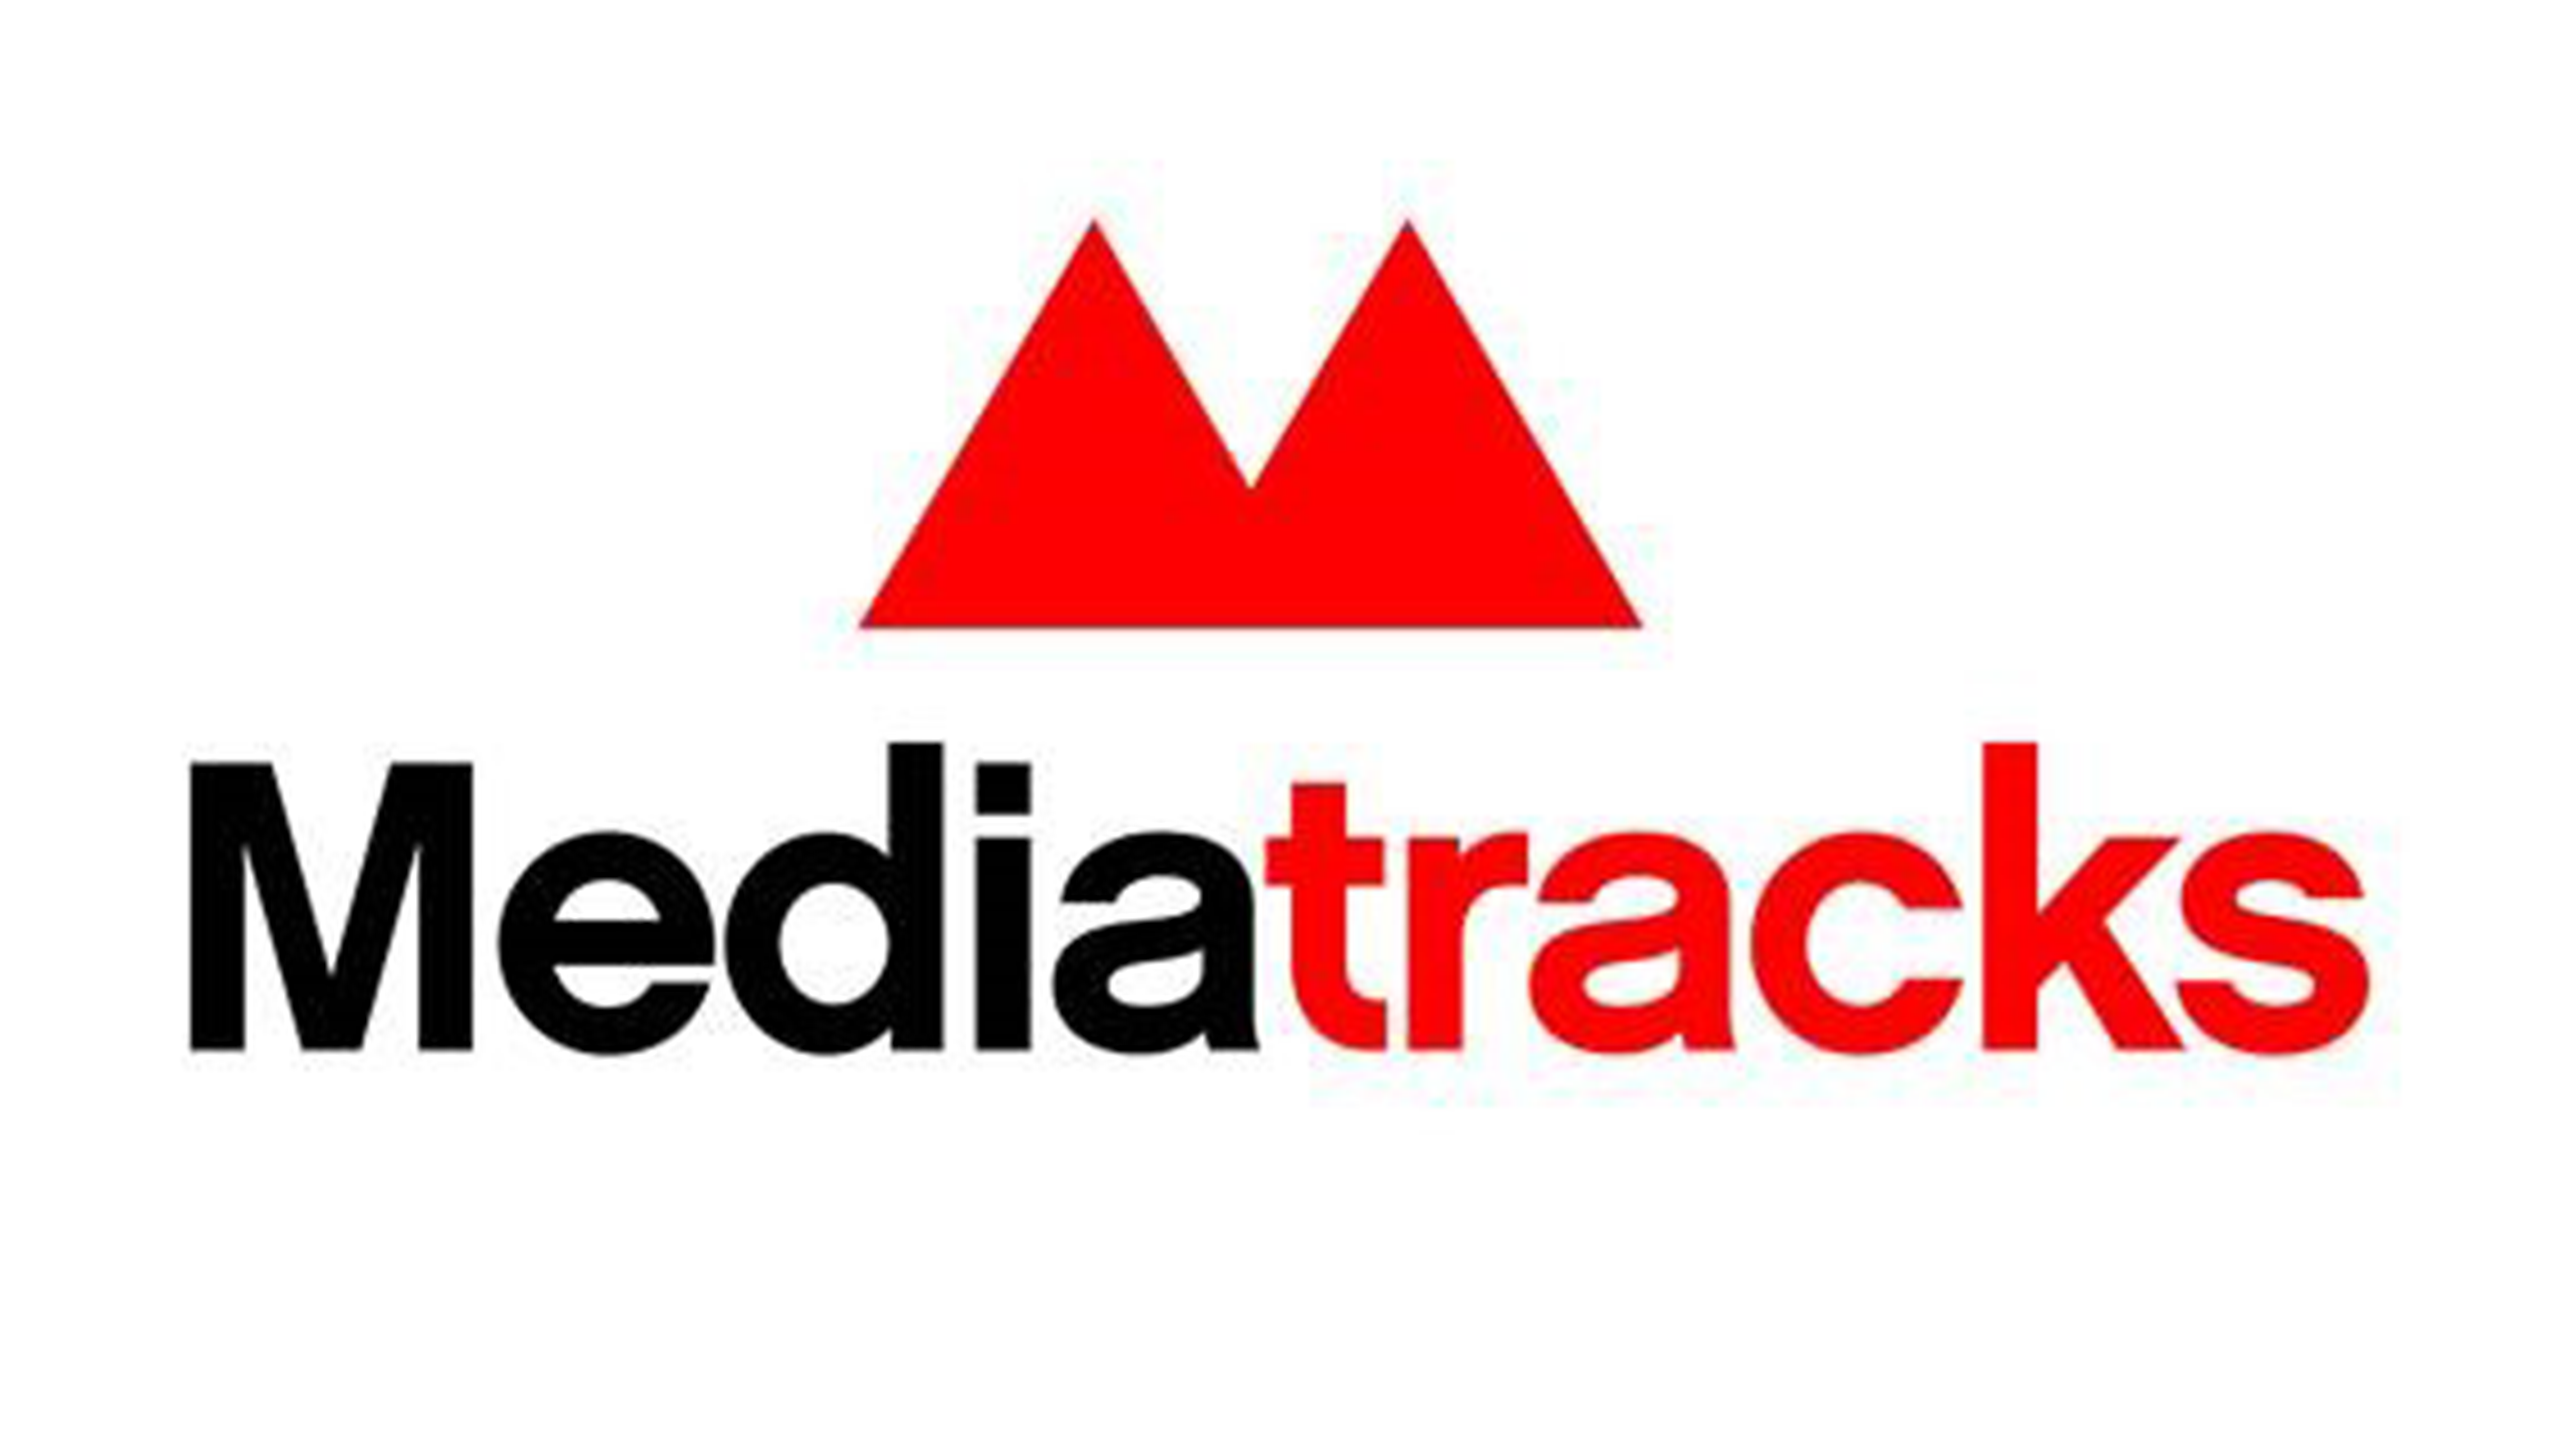 Mediatracks logo